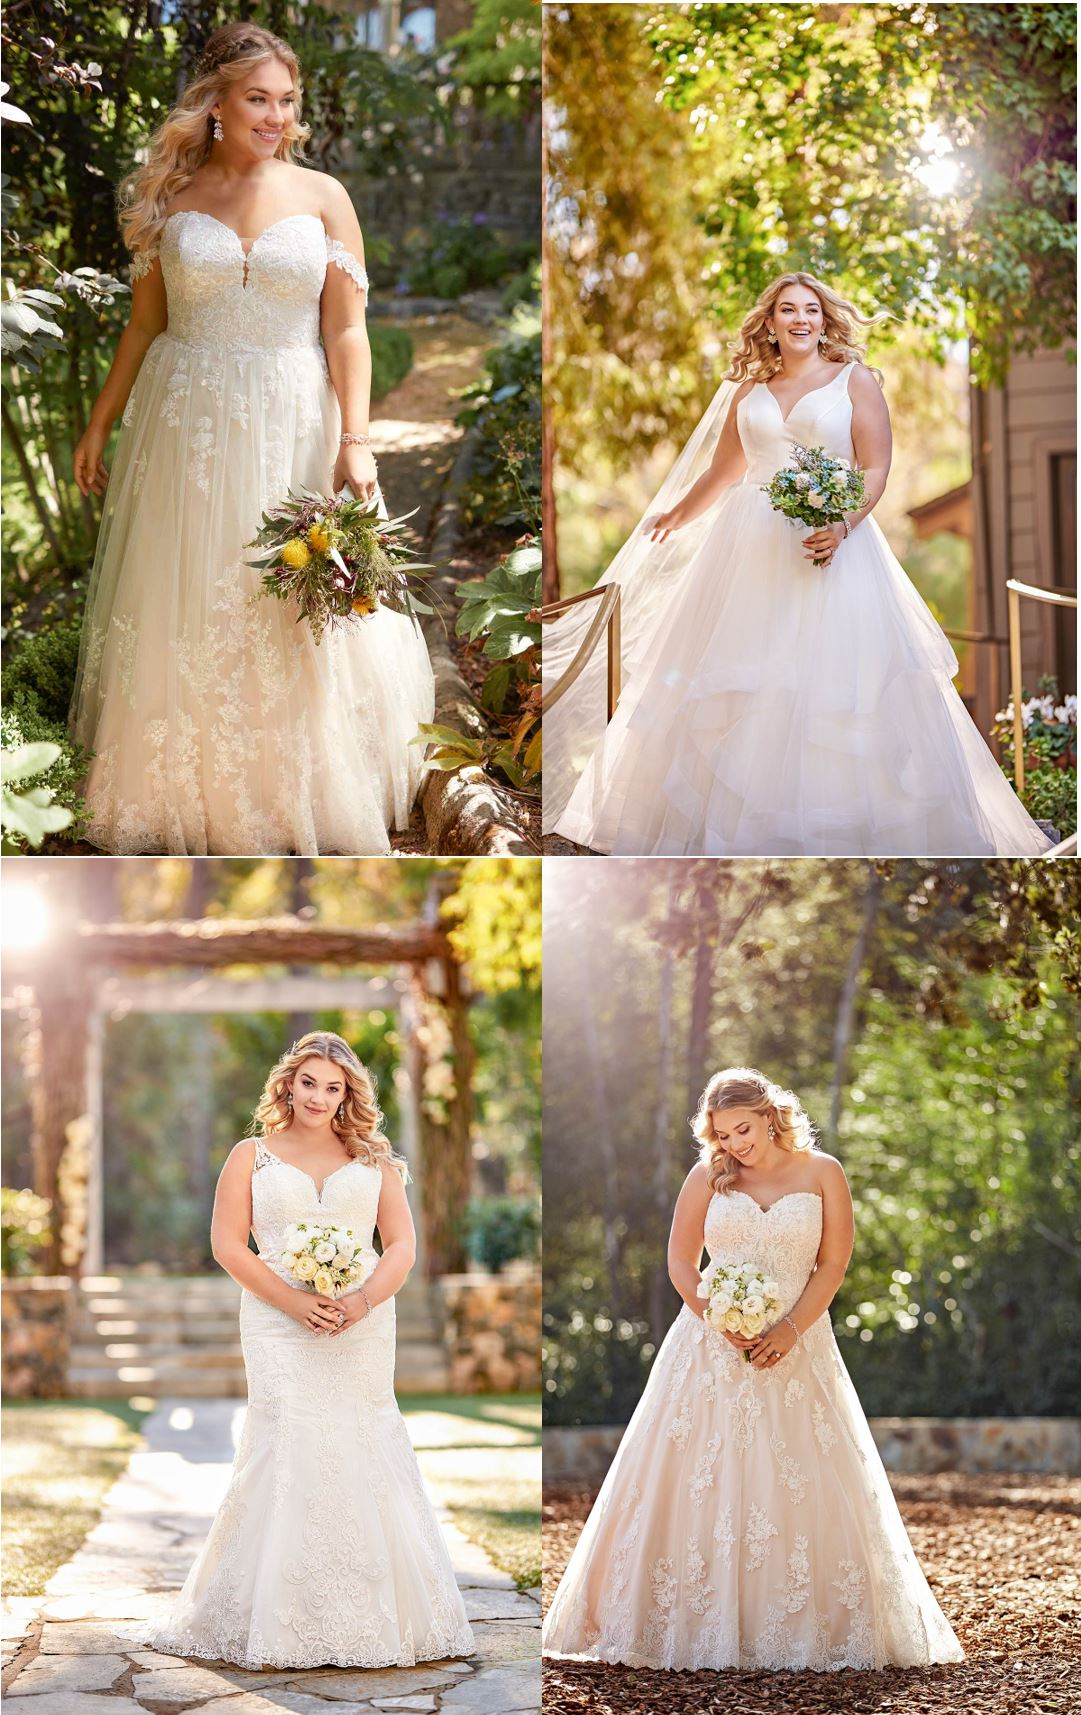 b3c9a0b5b59 Any wedding gown purchased from Essense of Australia will receive a 10%  special trunk show discount. Call us at 516-248-2888 or book your  appointment on ...